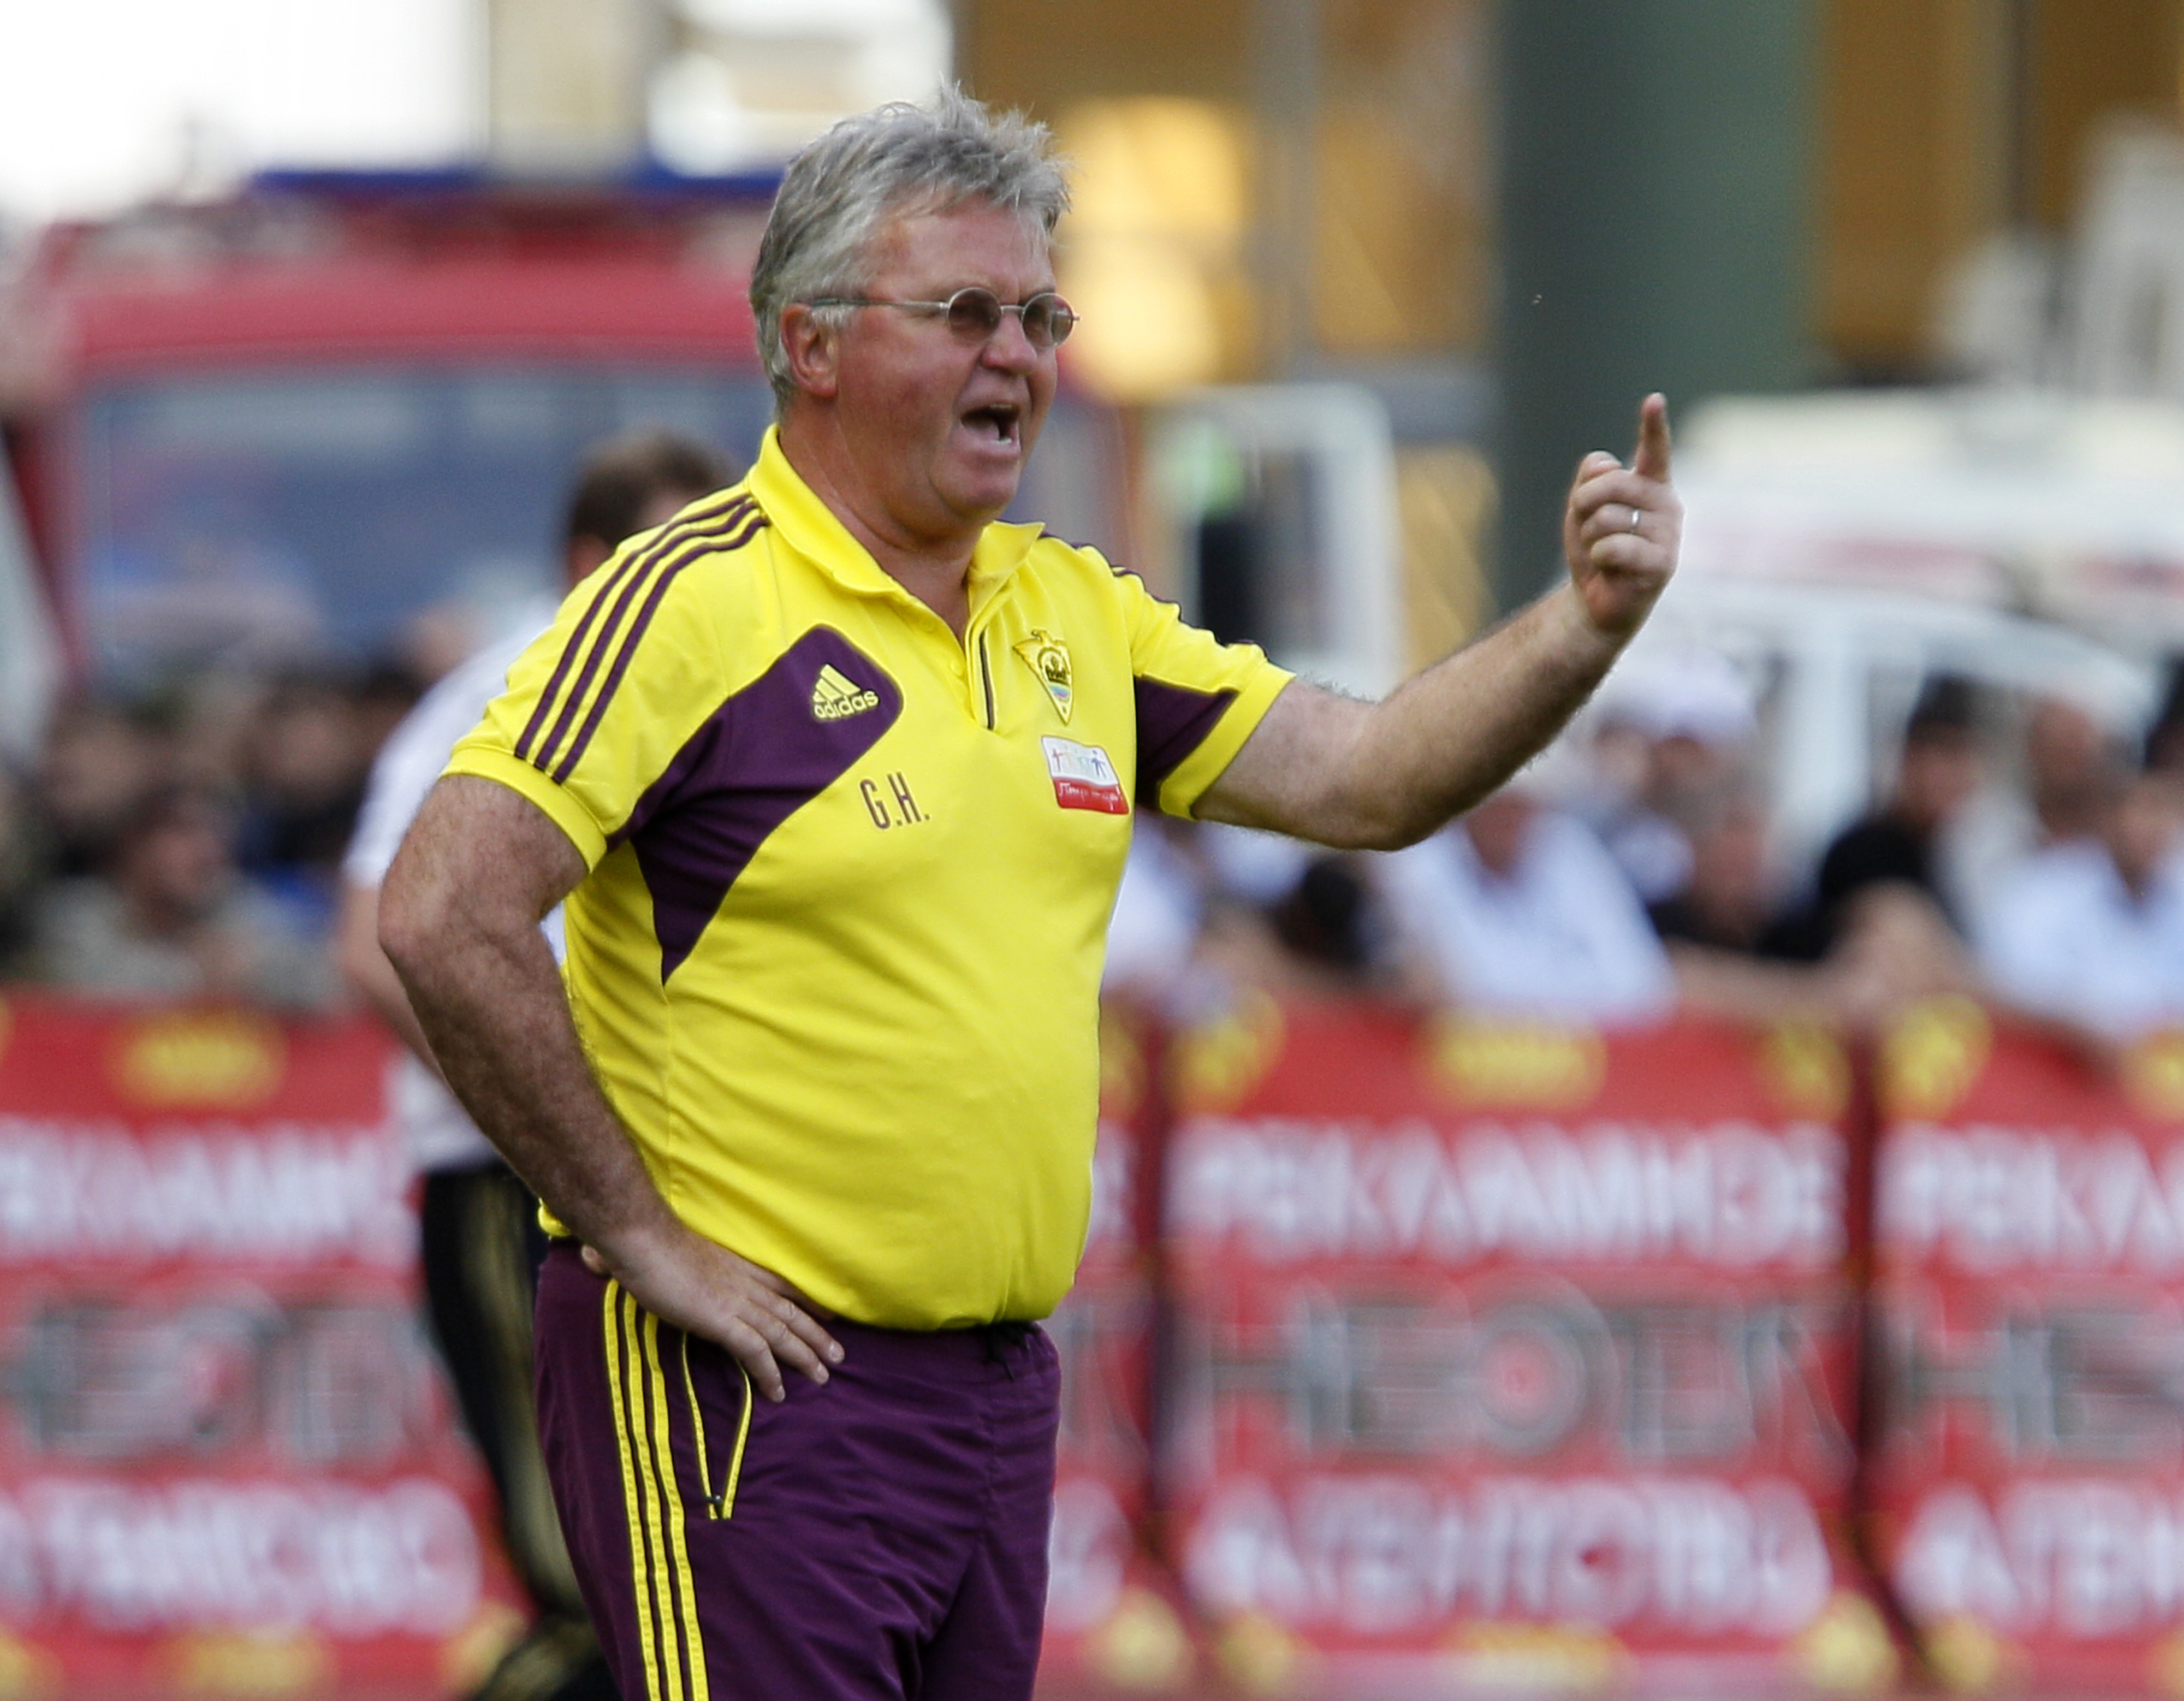 Guus Hiddink to be Netherlands manager after 2014 World Cup